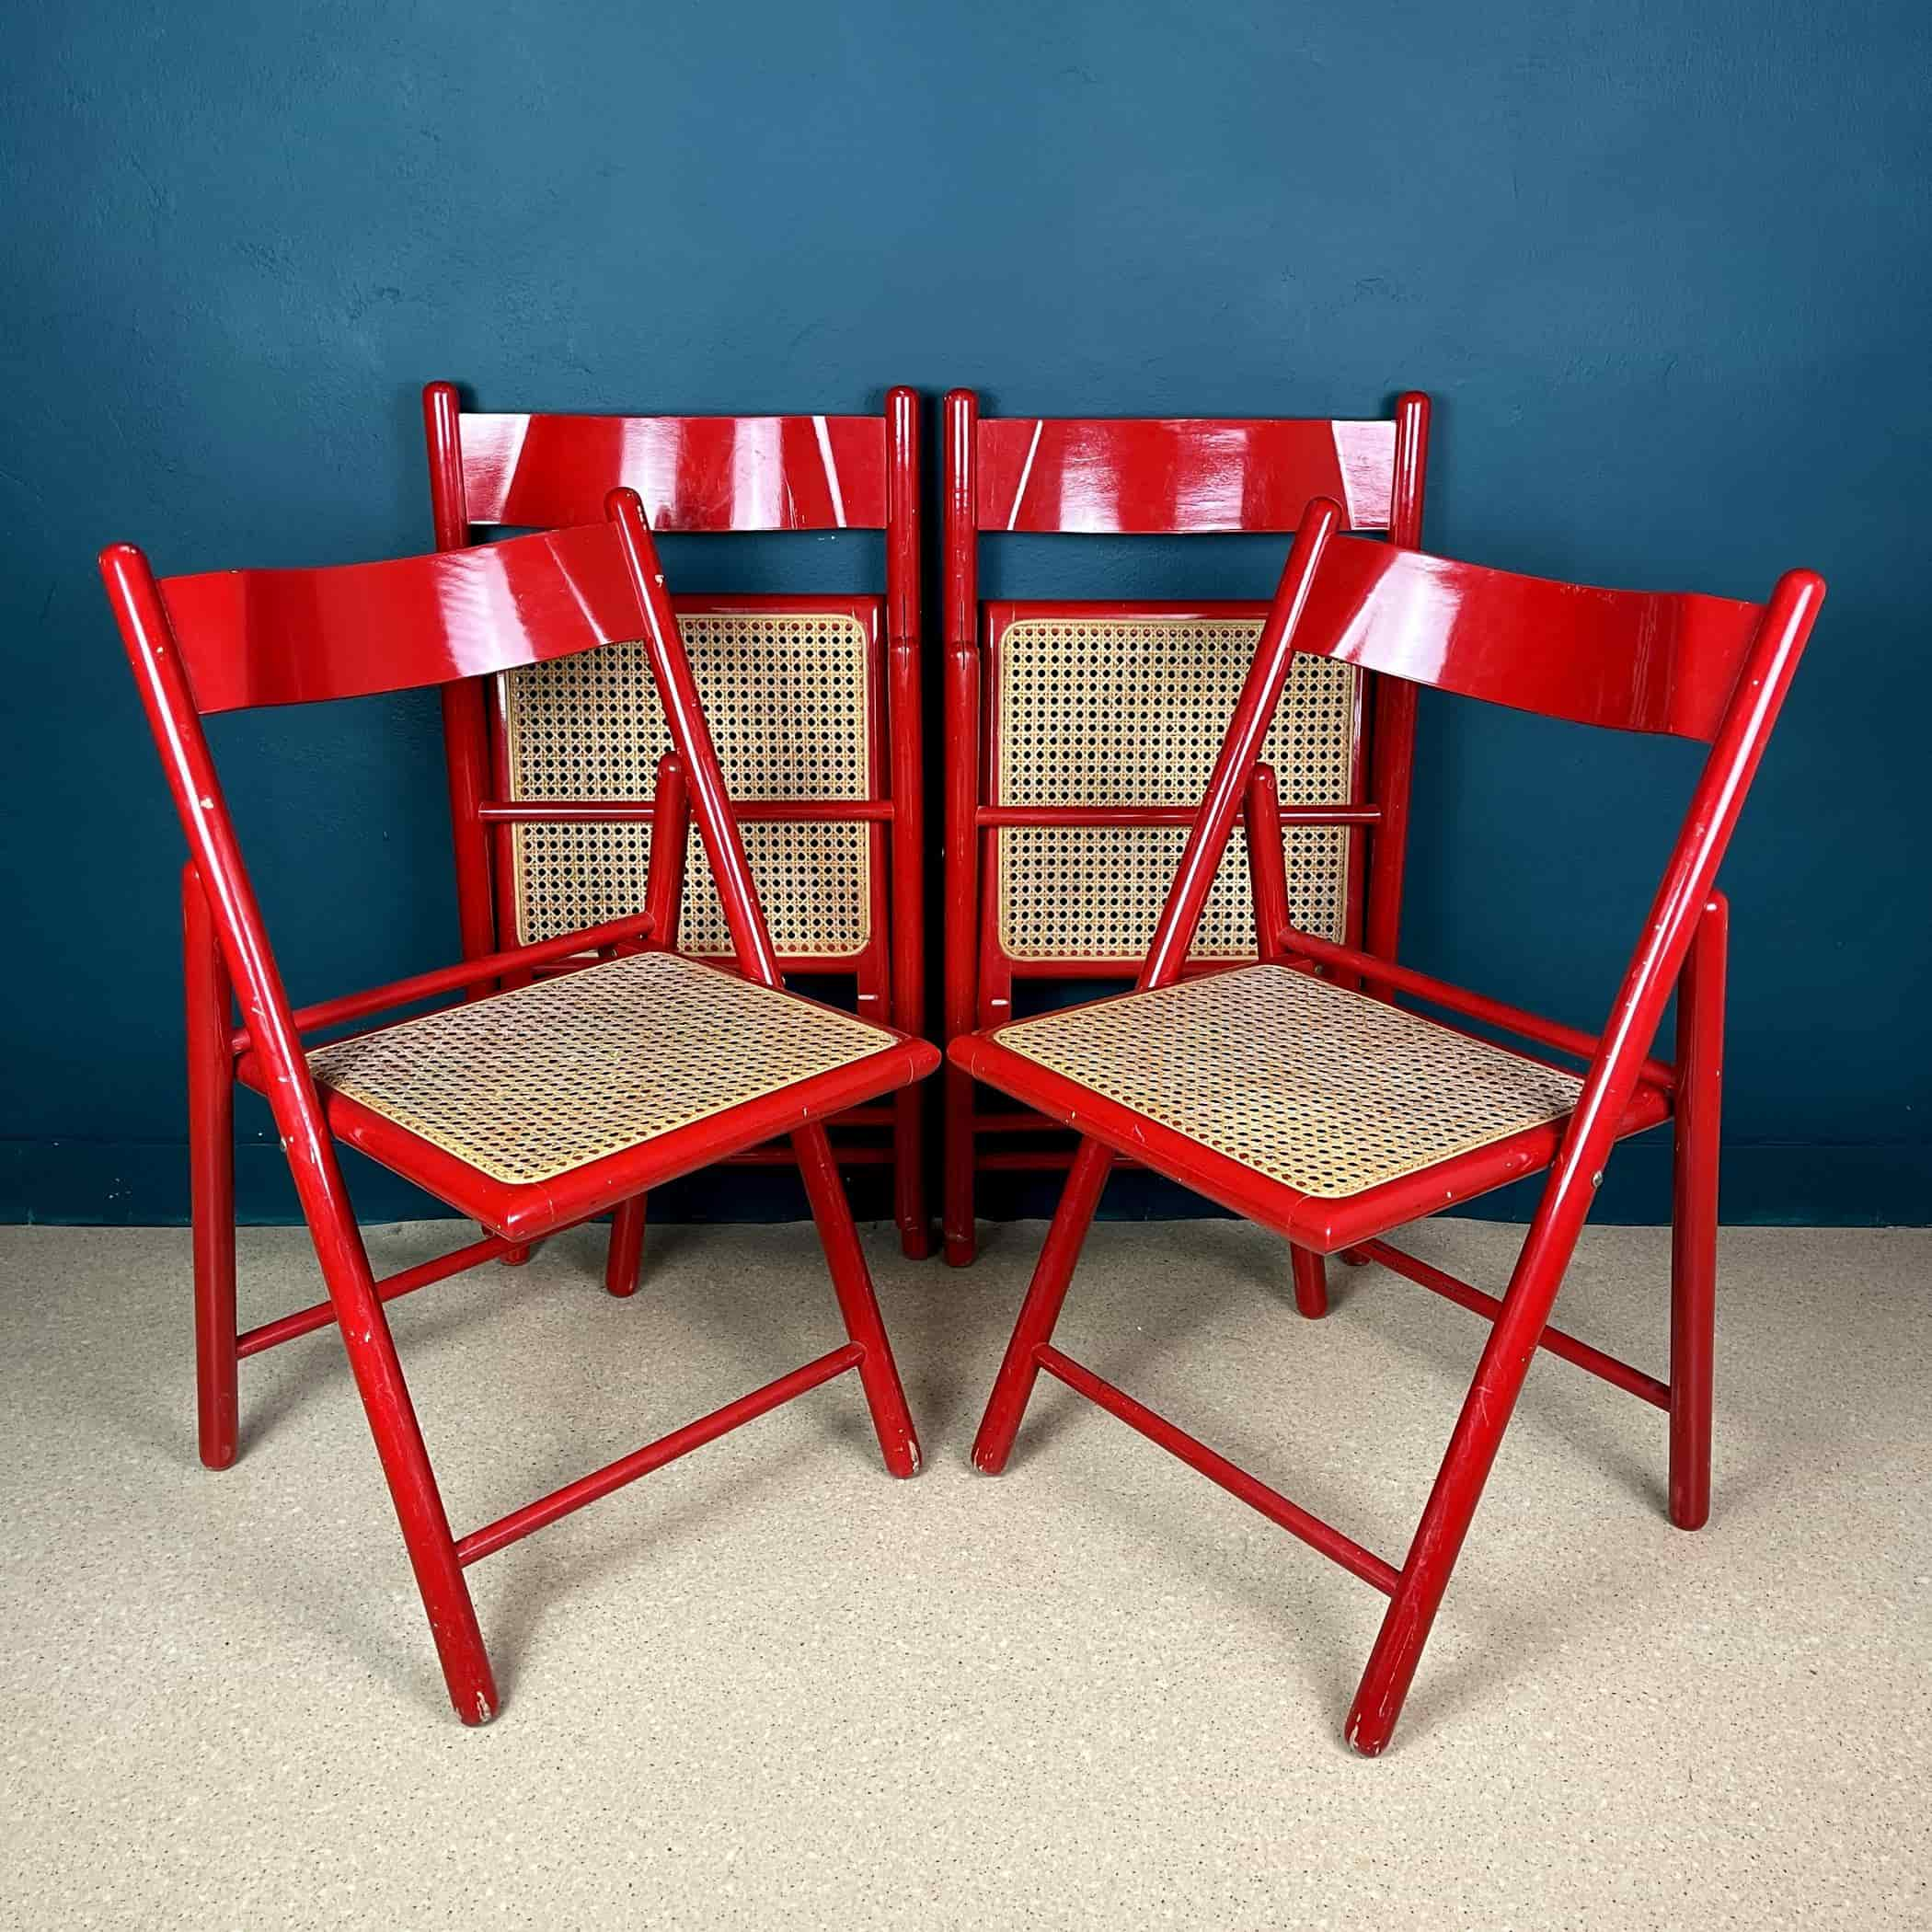 Set of 4 mid-century red folding dining chairs Italy 1980s Vintage italian furniture